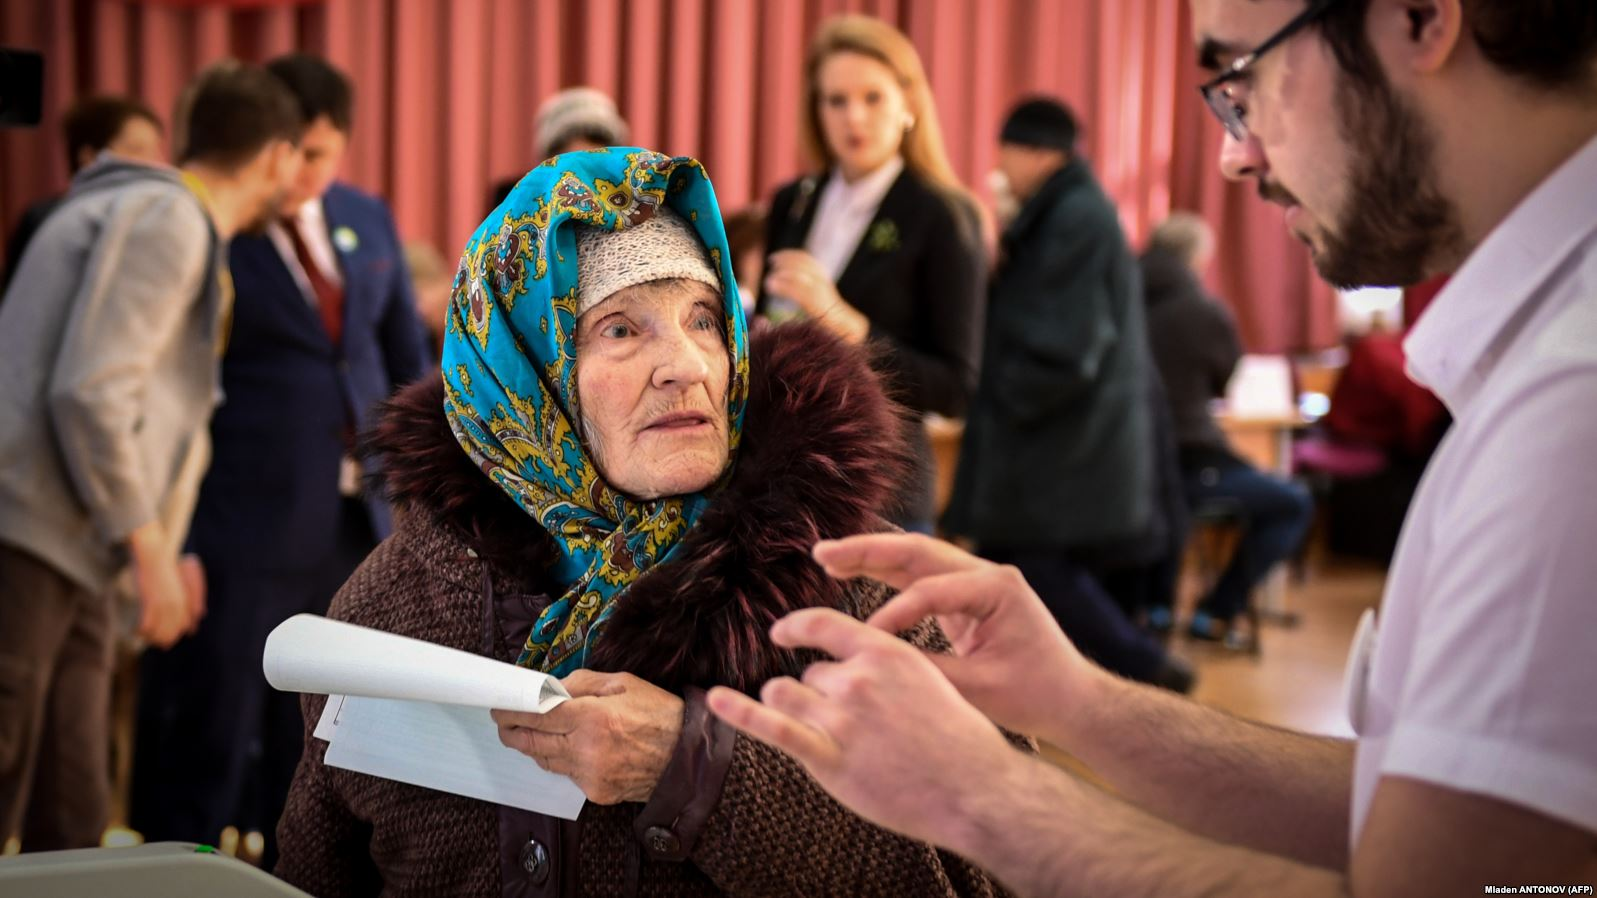 Putin proposes softening retirement age increase for women to 60